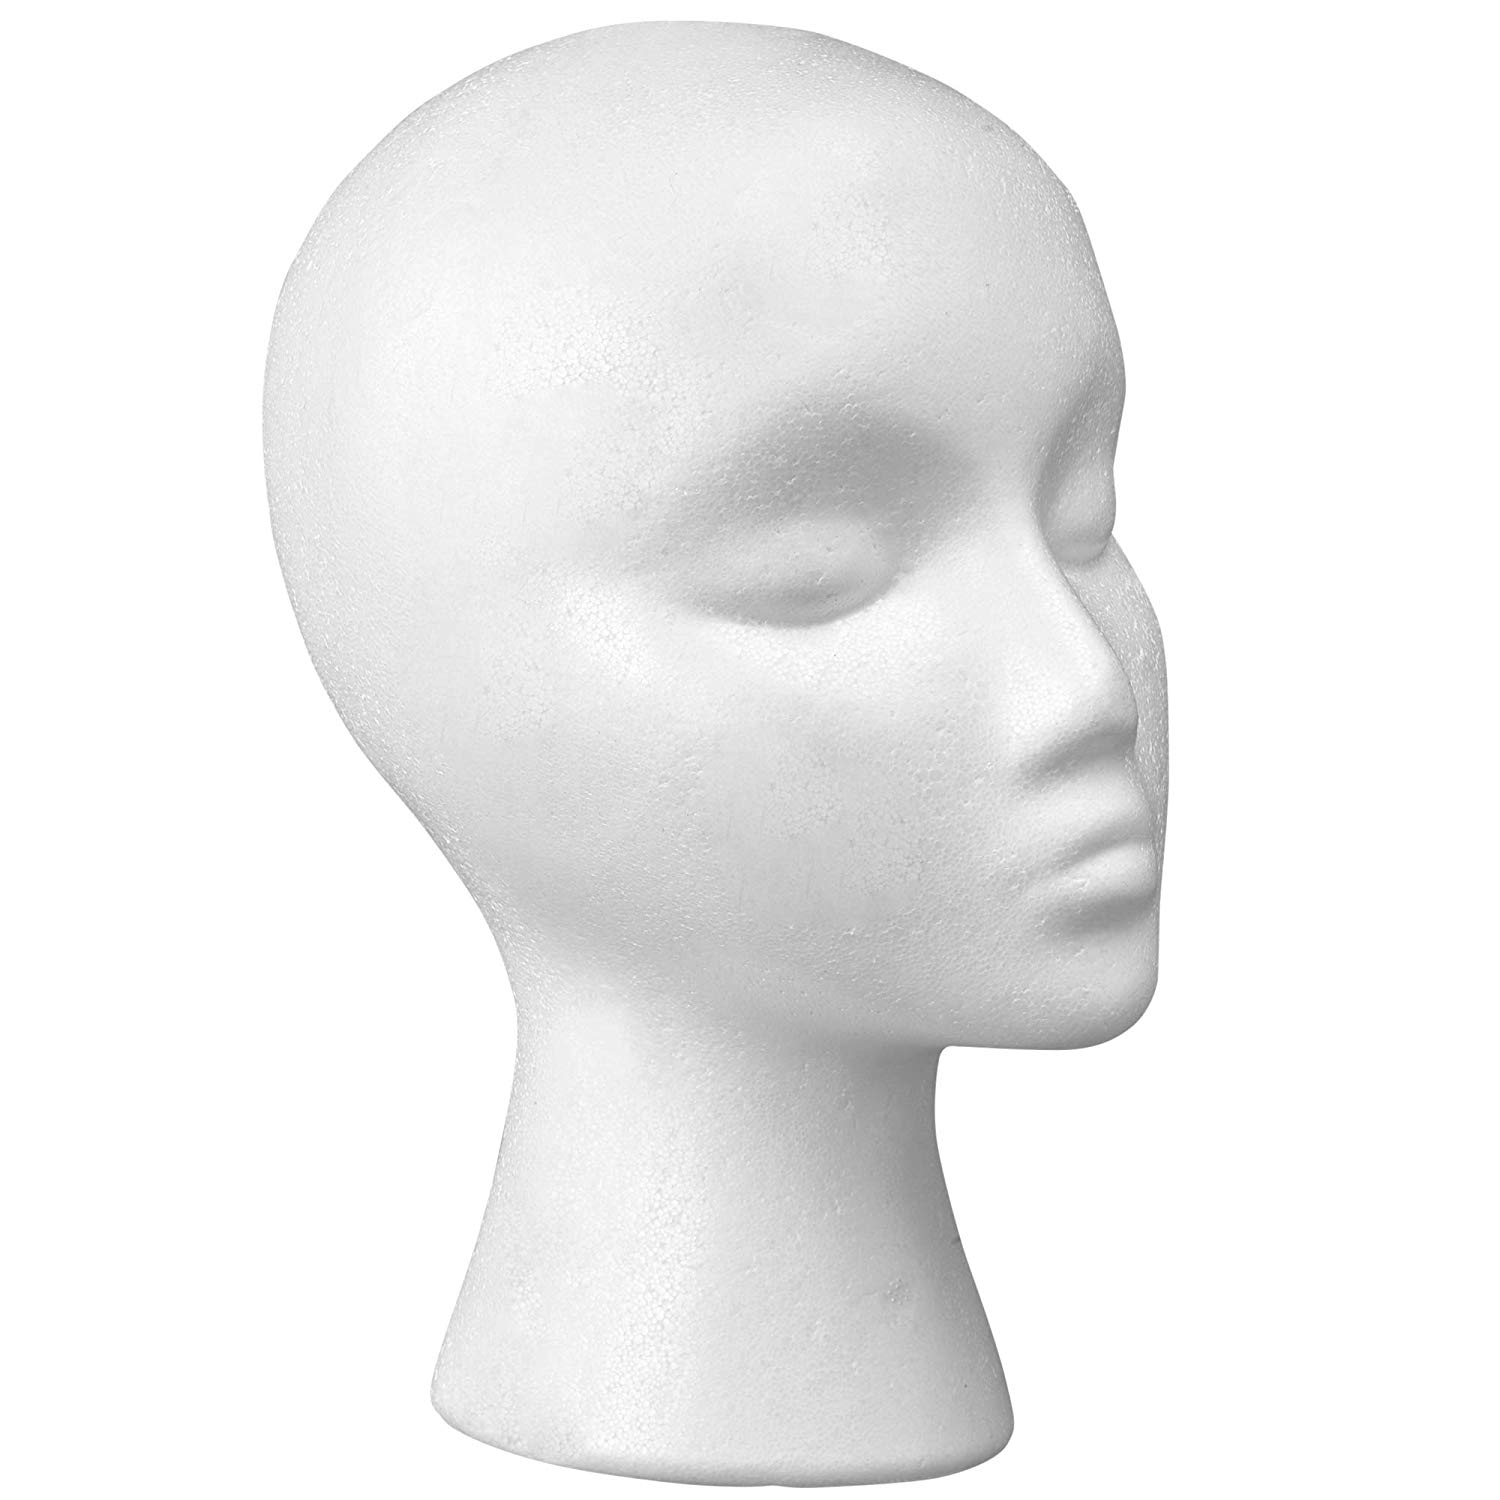 sales promotion wig styrofoam head